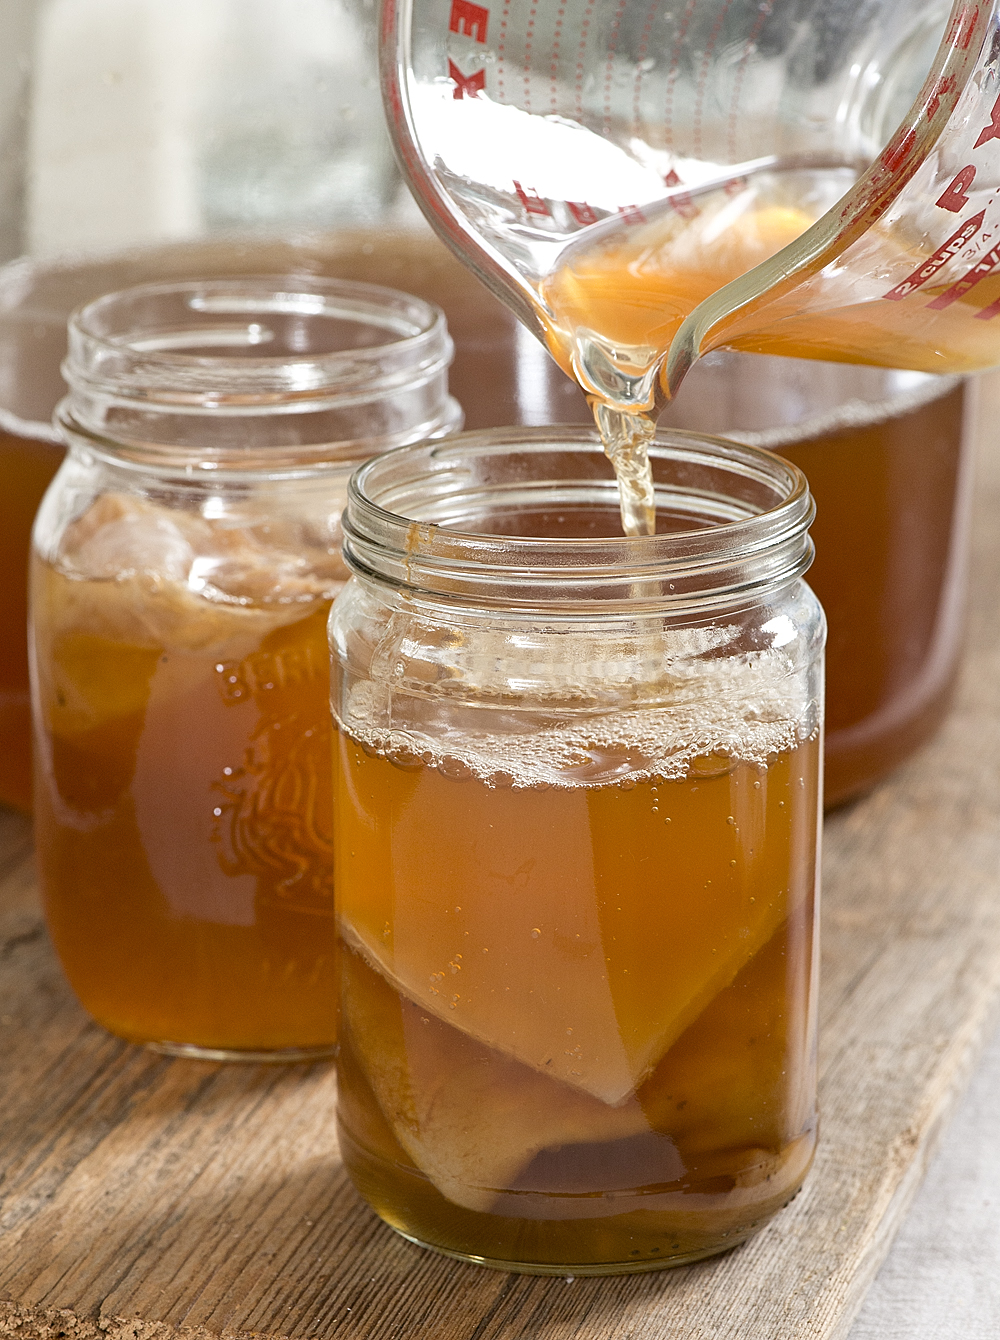 Skip the store bought and brew your own kombucha right at home with these Easy Kombucha instructions for perfect tea every time. The step by step instructions with photos make it easy!